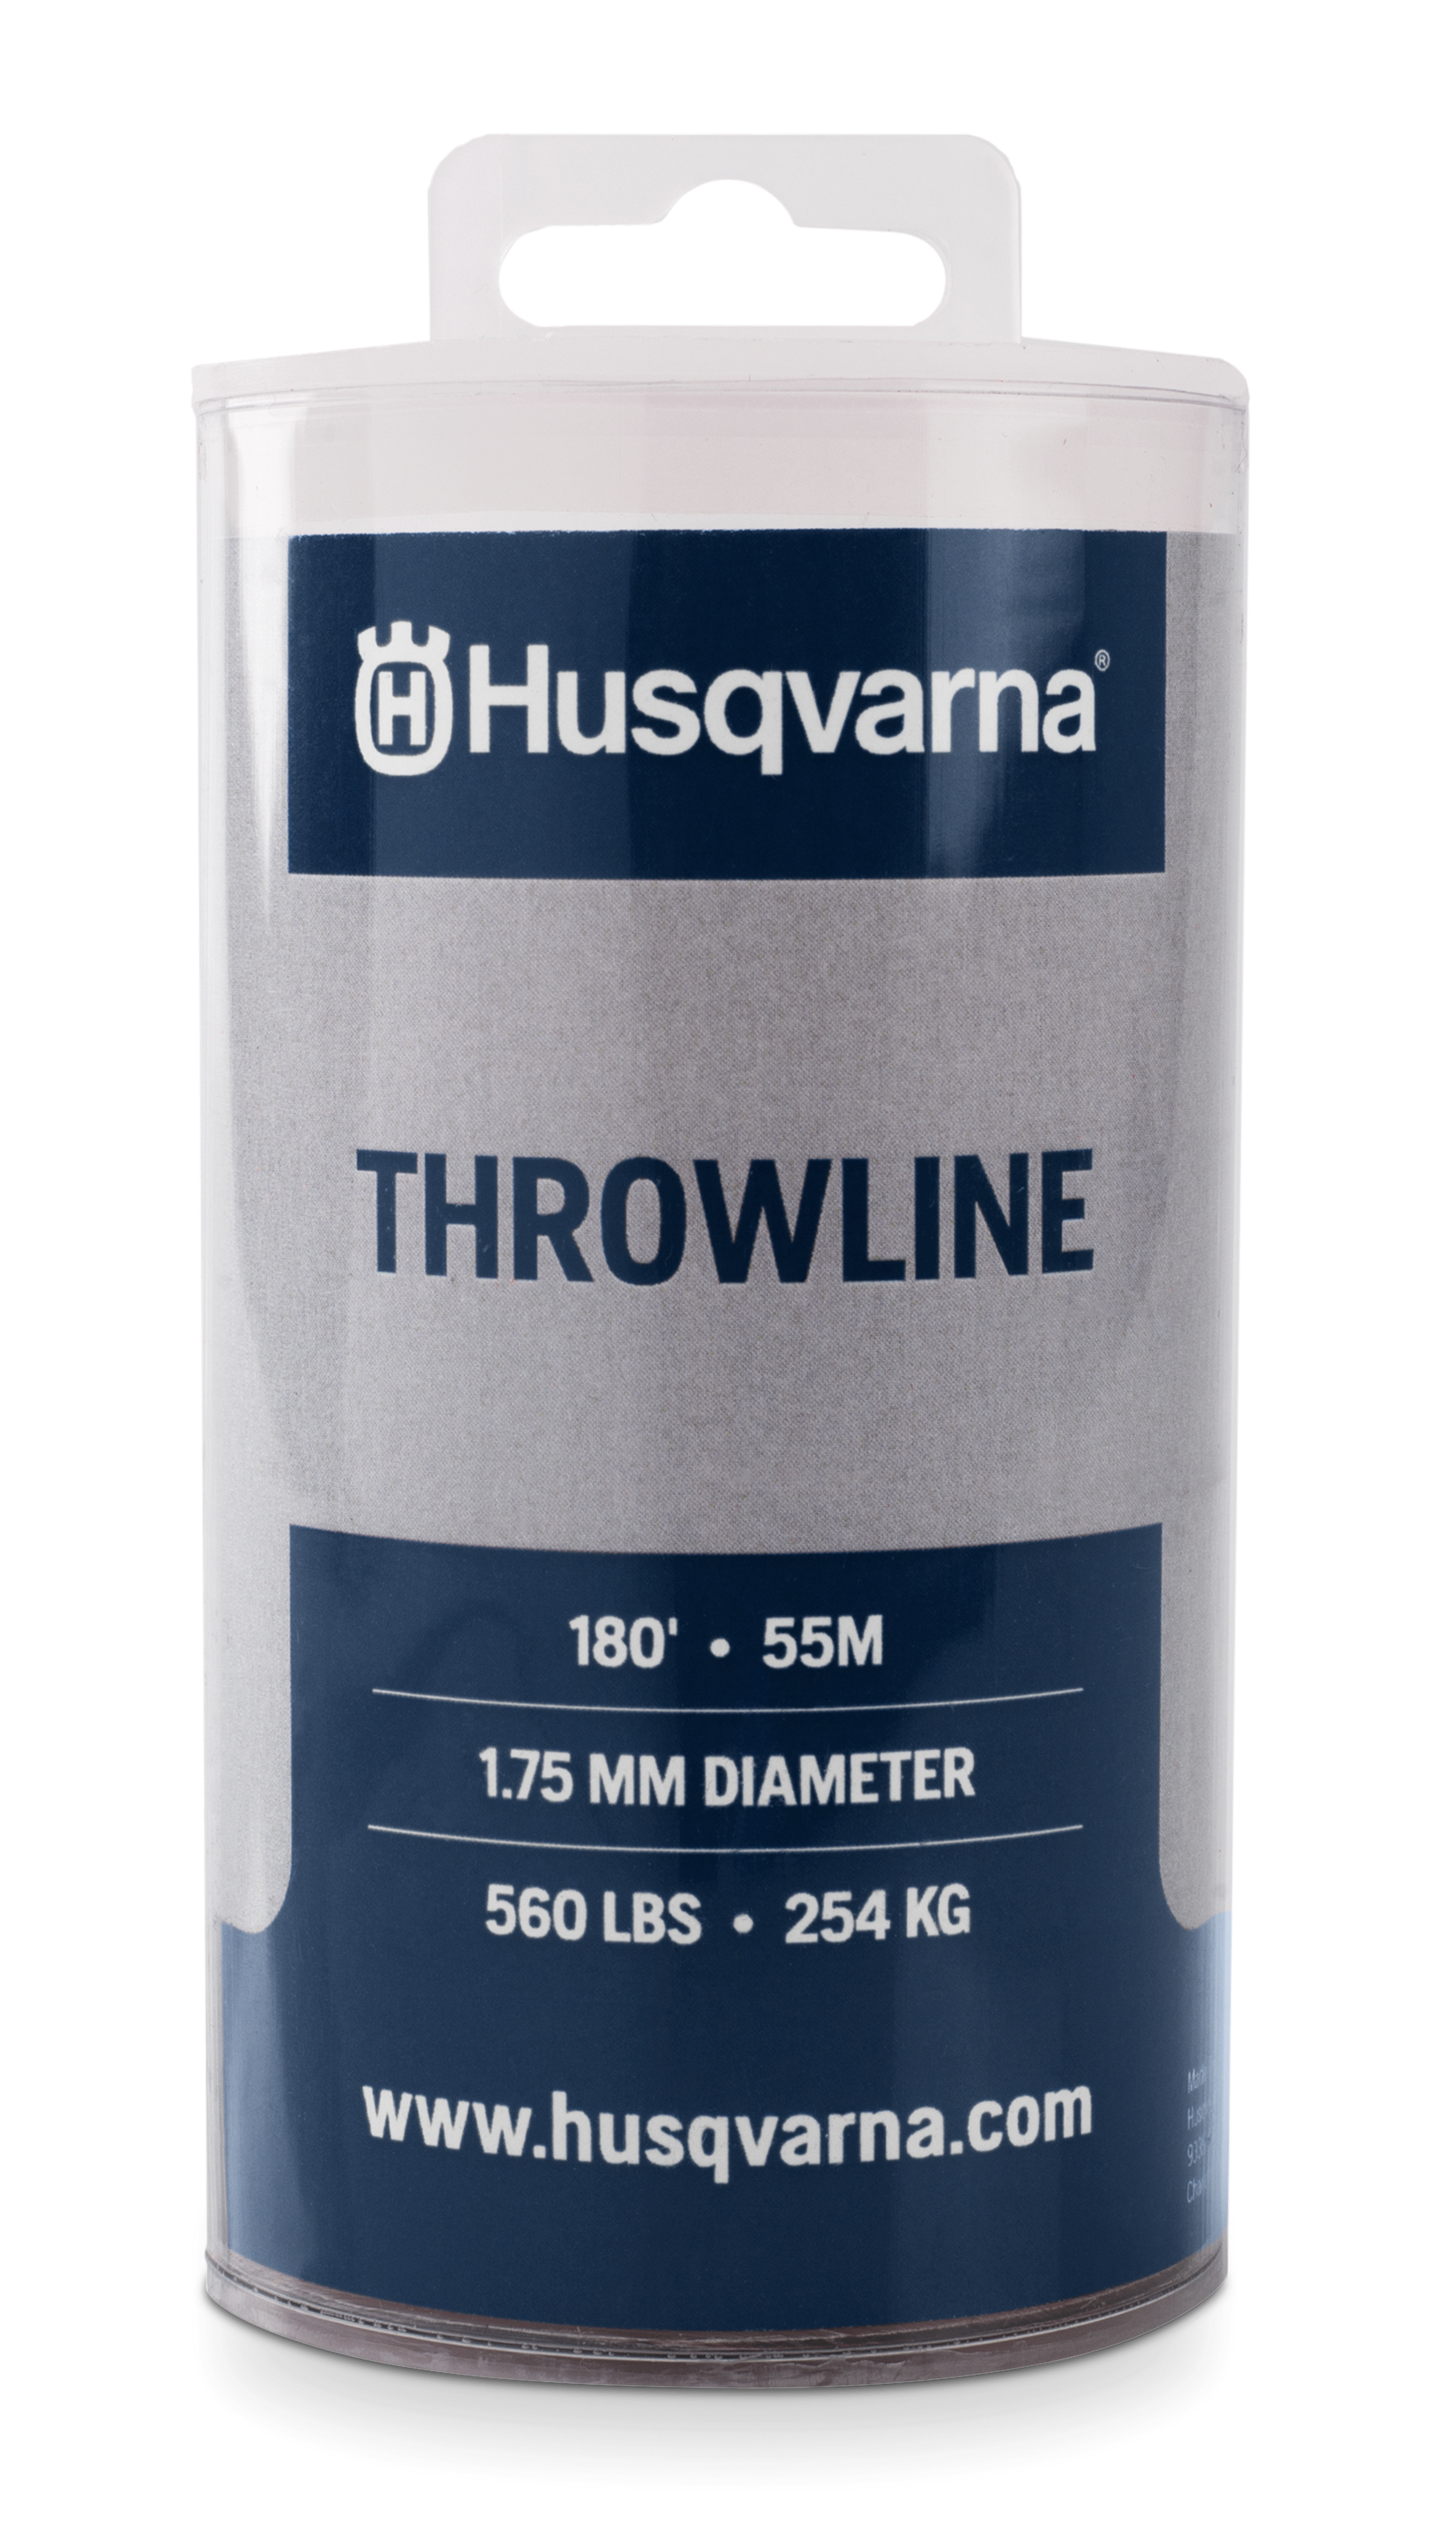 Image for Throwline                                                                                                                        from HusqvarnaB2C